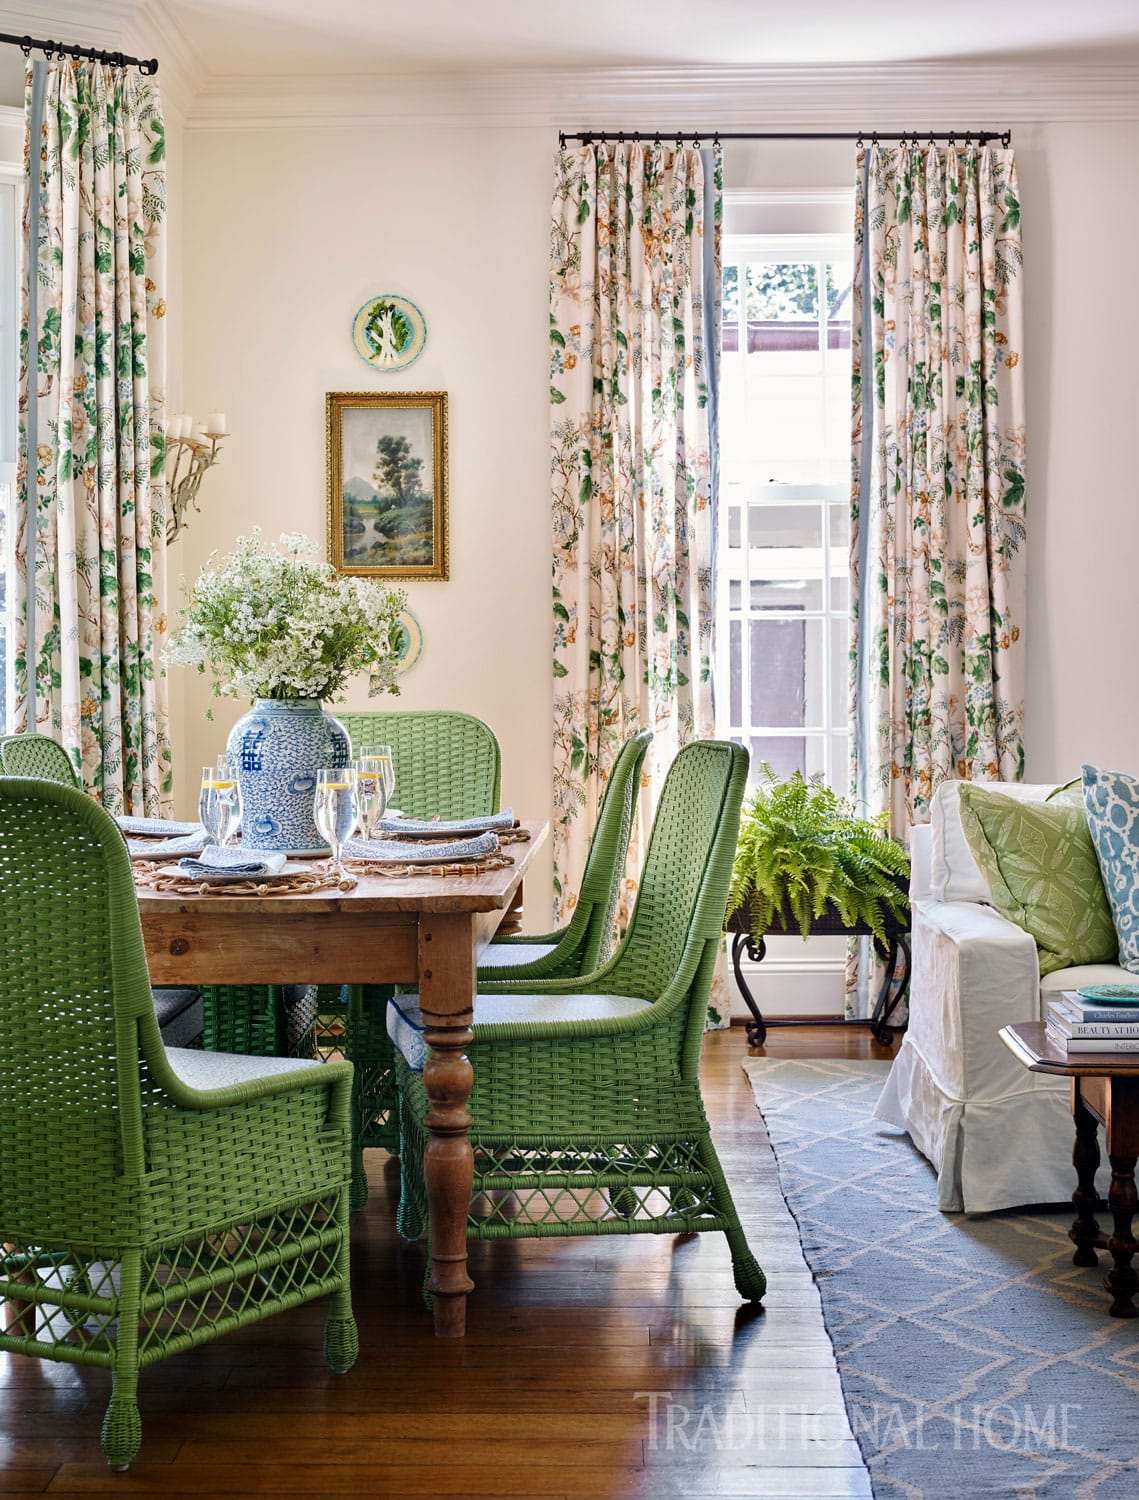 Green Dining Chairs Wicker Traditional Home Design Country Style